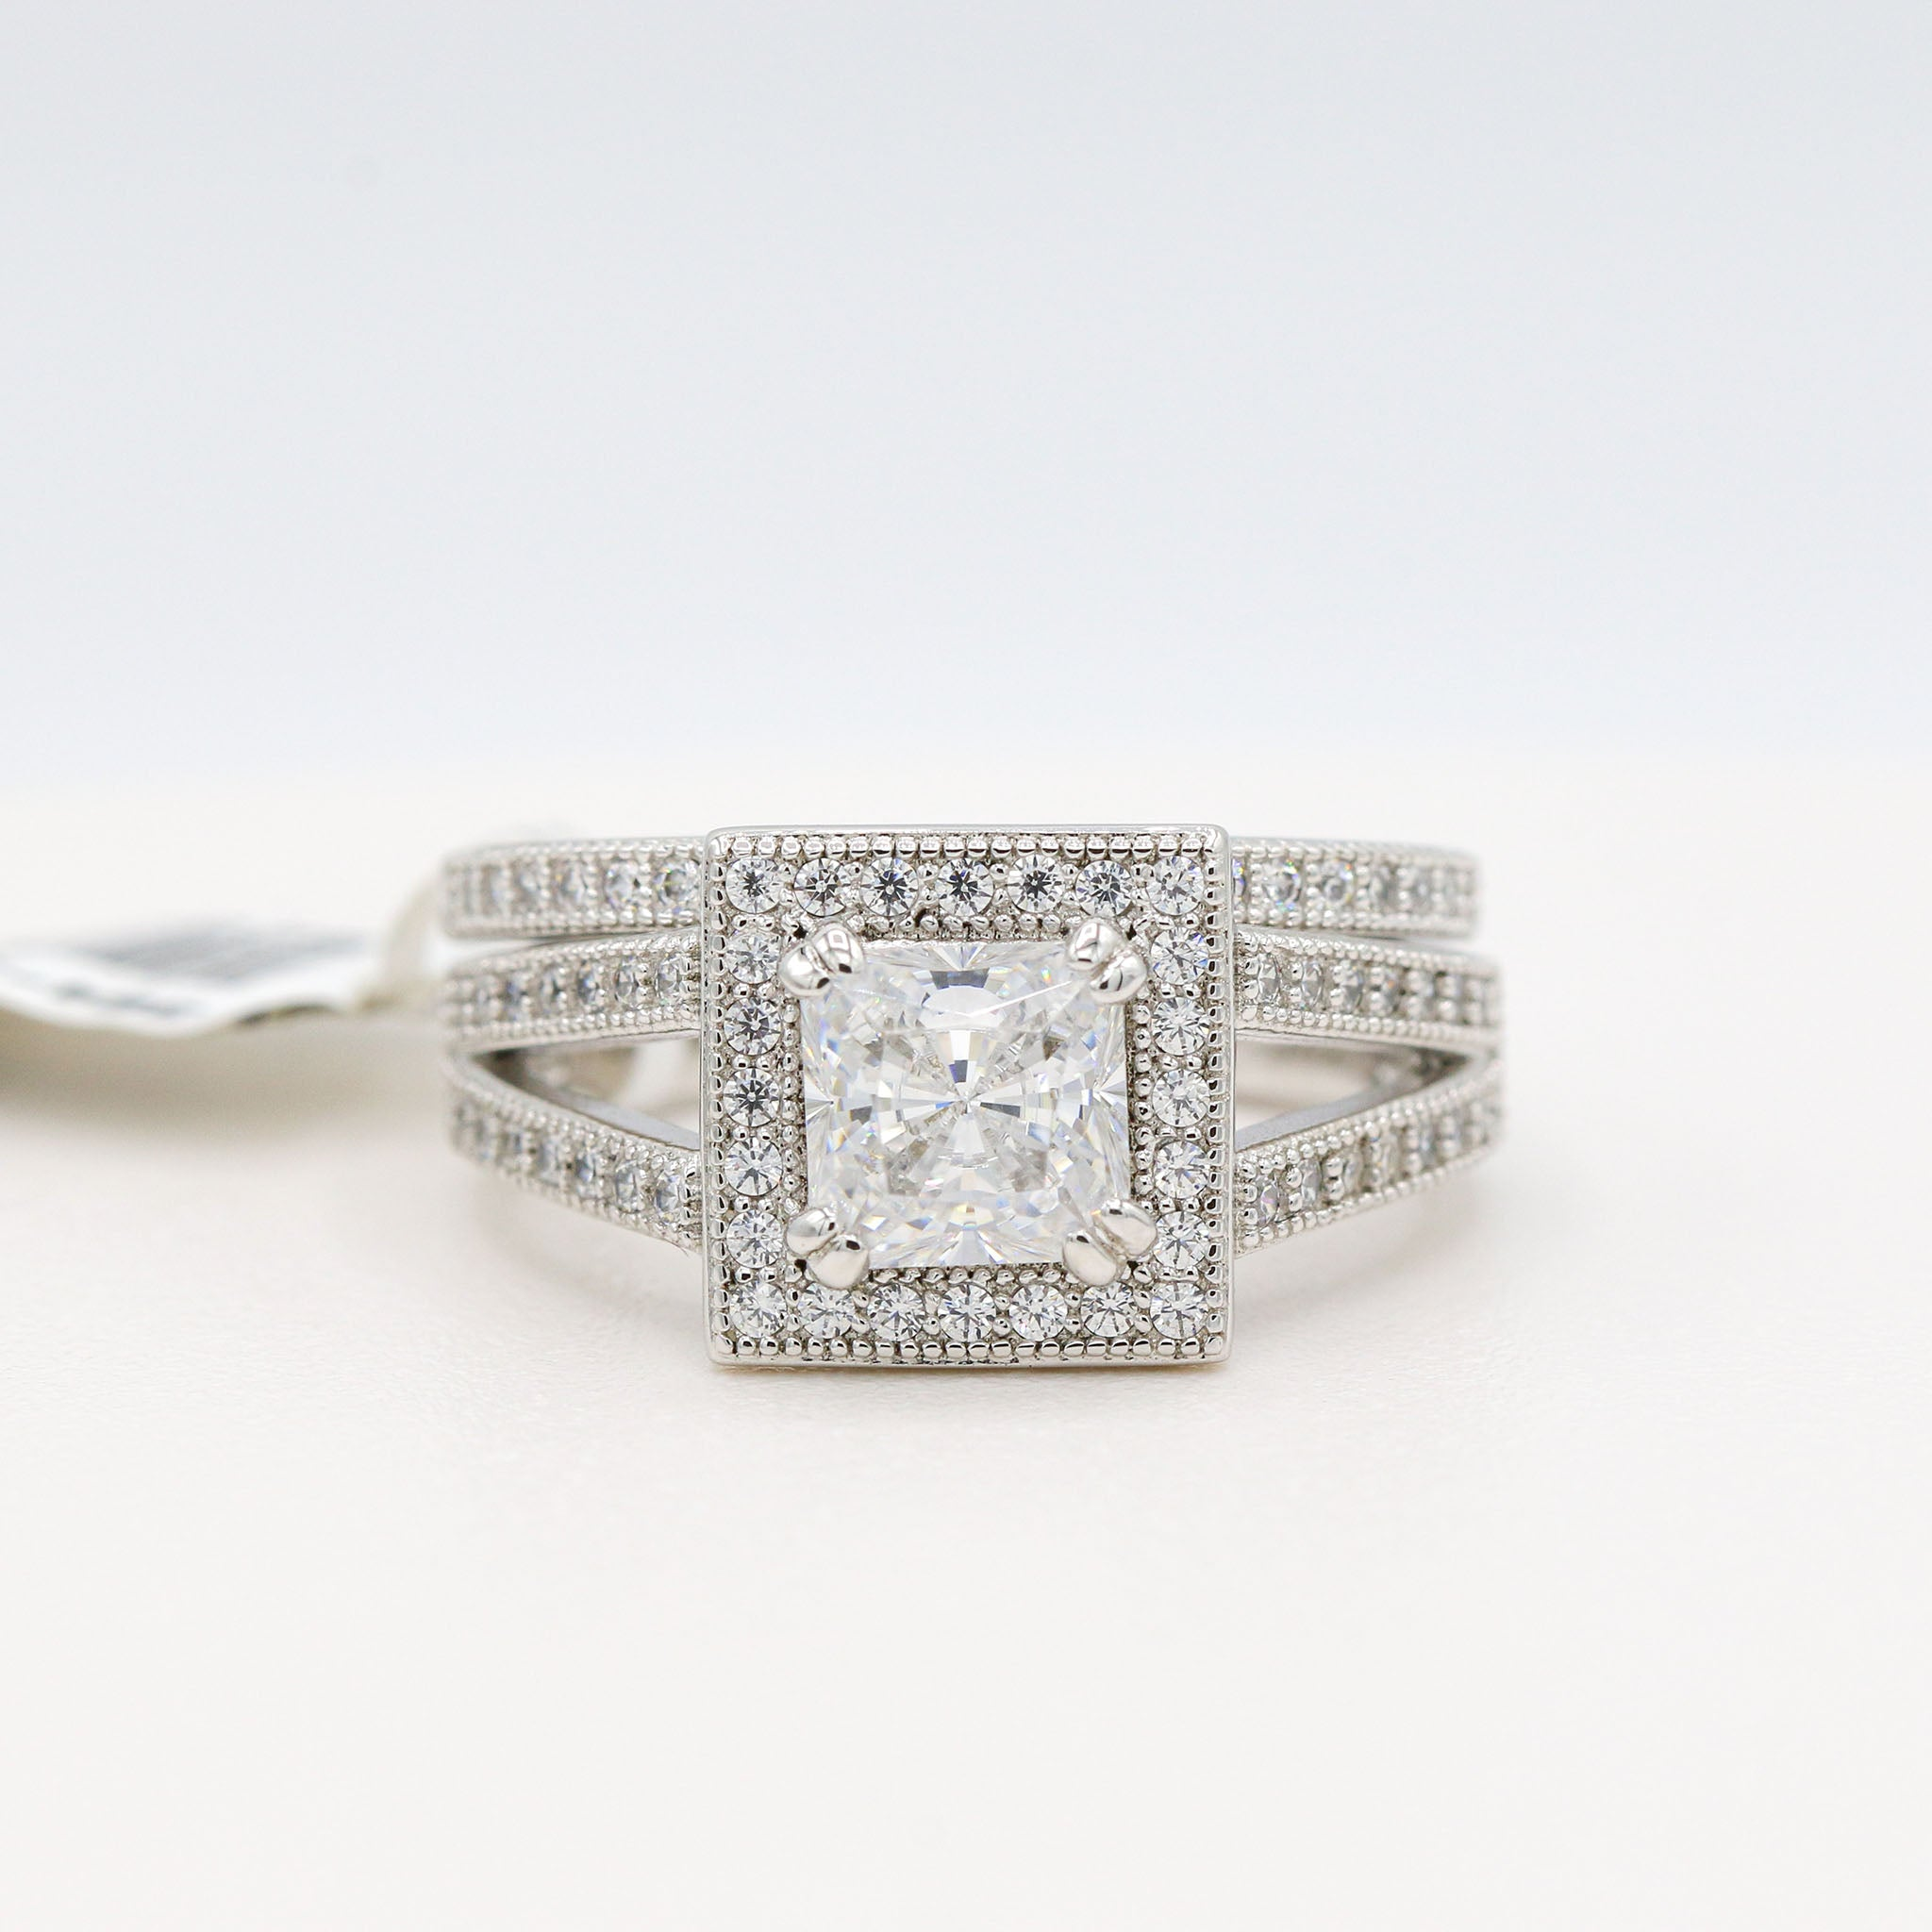 Pleasing Lafonn Sterling Silver Bonded in Platinum Bridal Ring Set (2.52ct Simulated Diamonds)